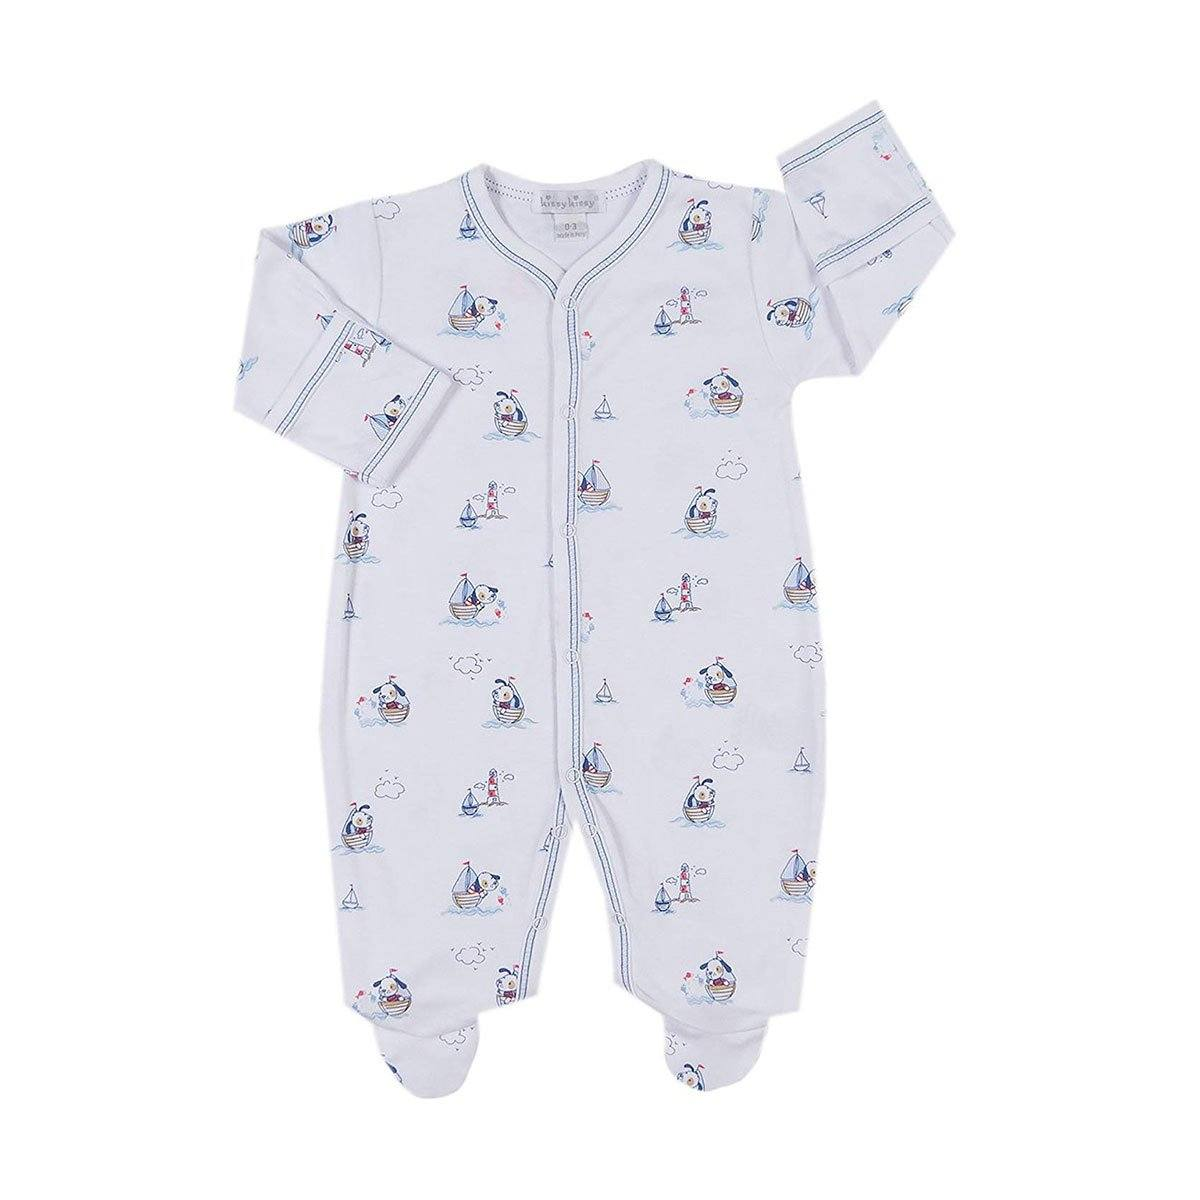 30cf9b1b79c8 Kissy Kissy - Harbor Master Print Onesie For Boys